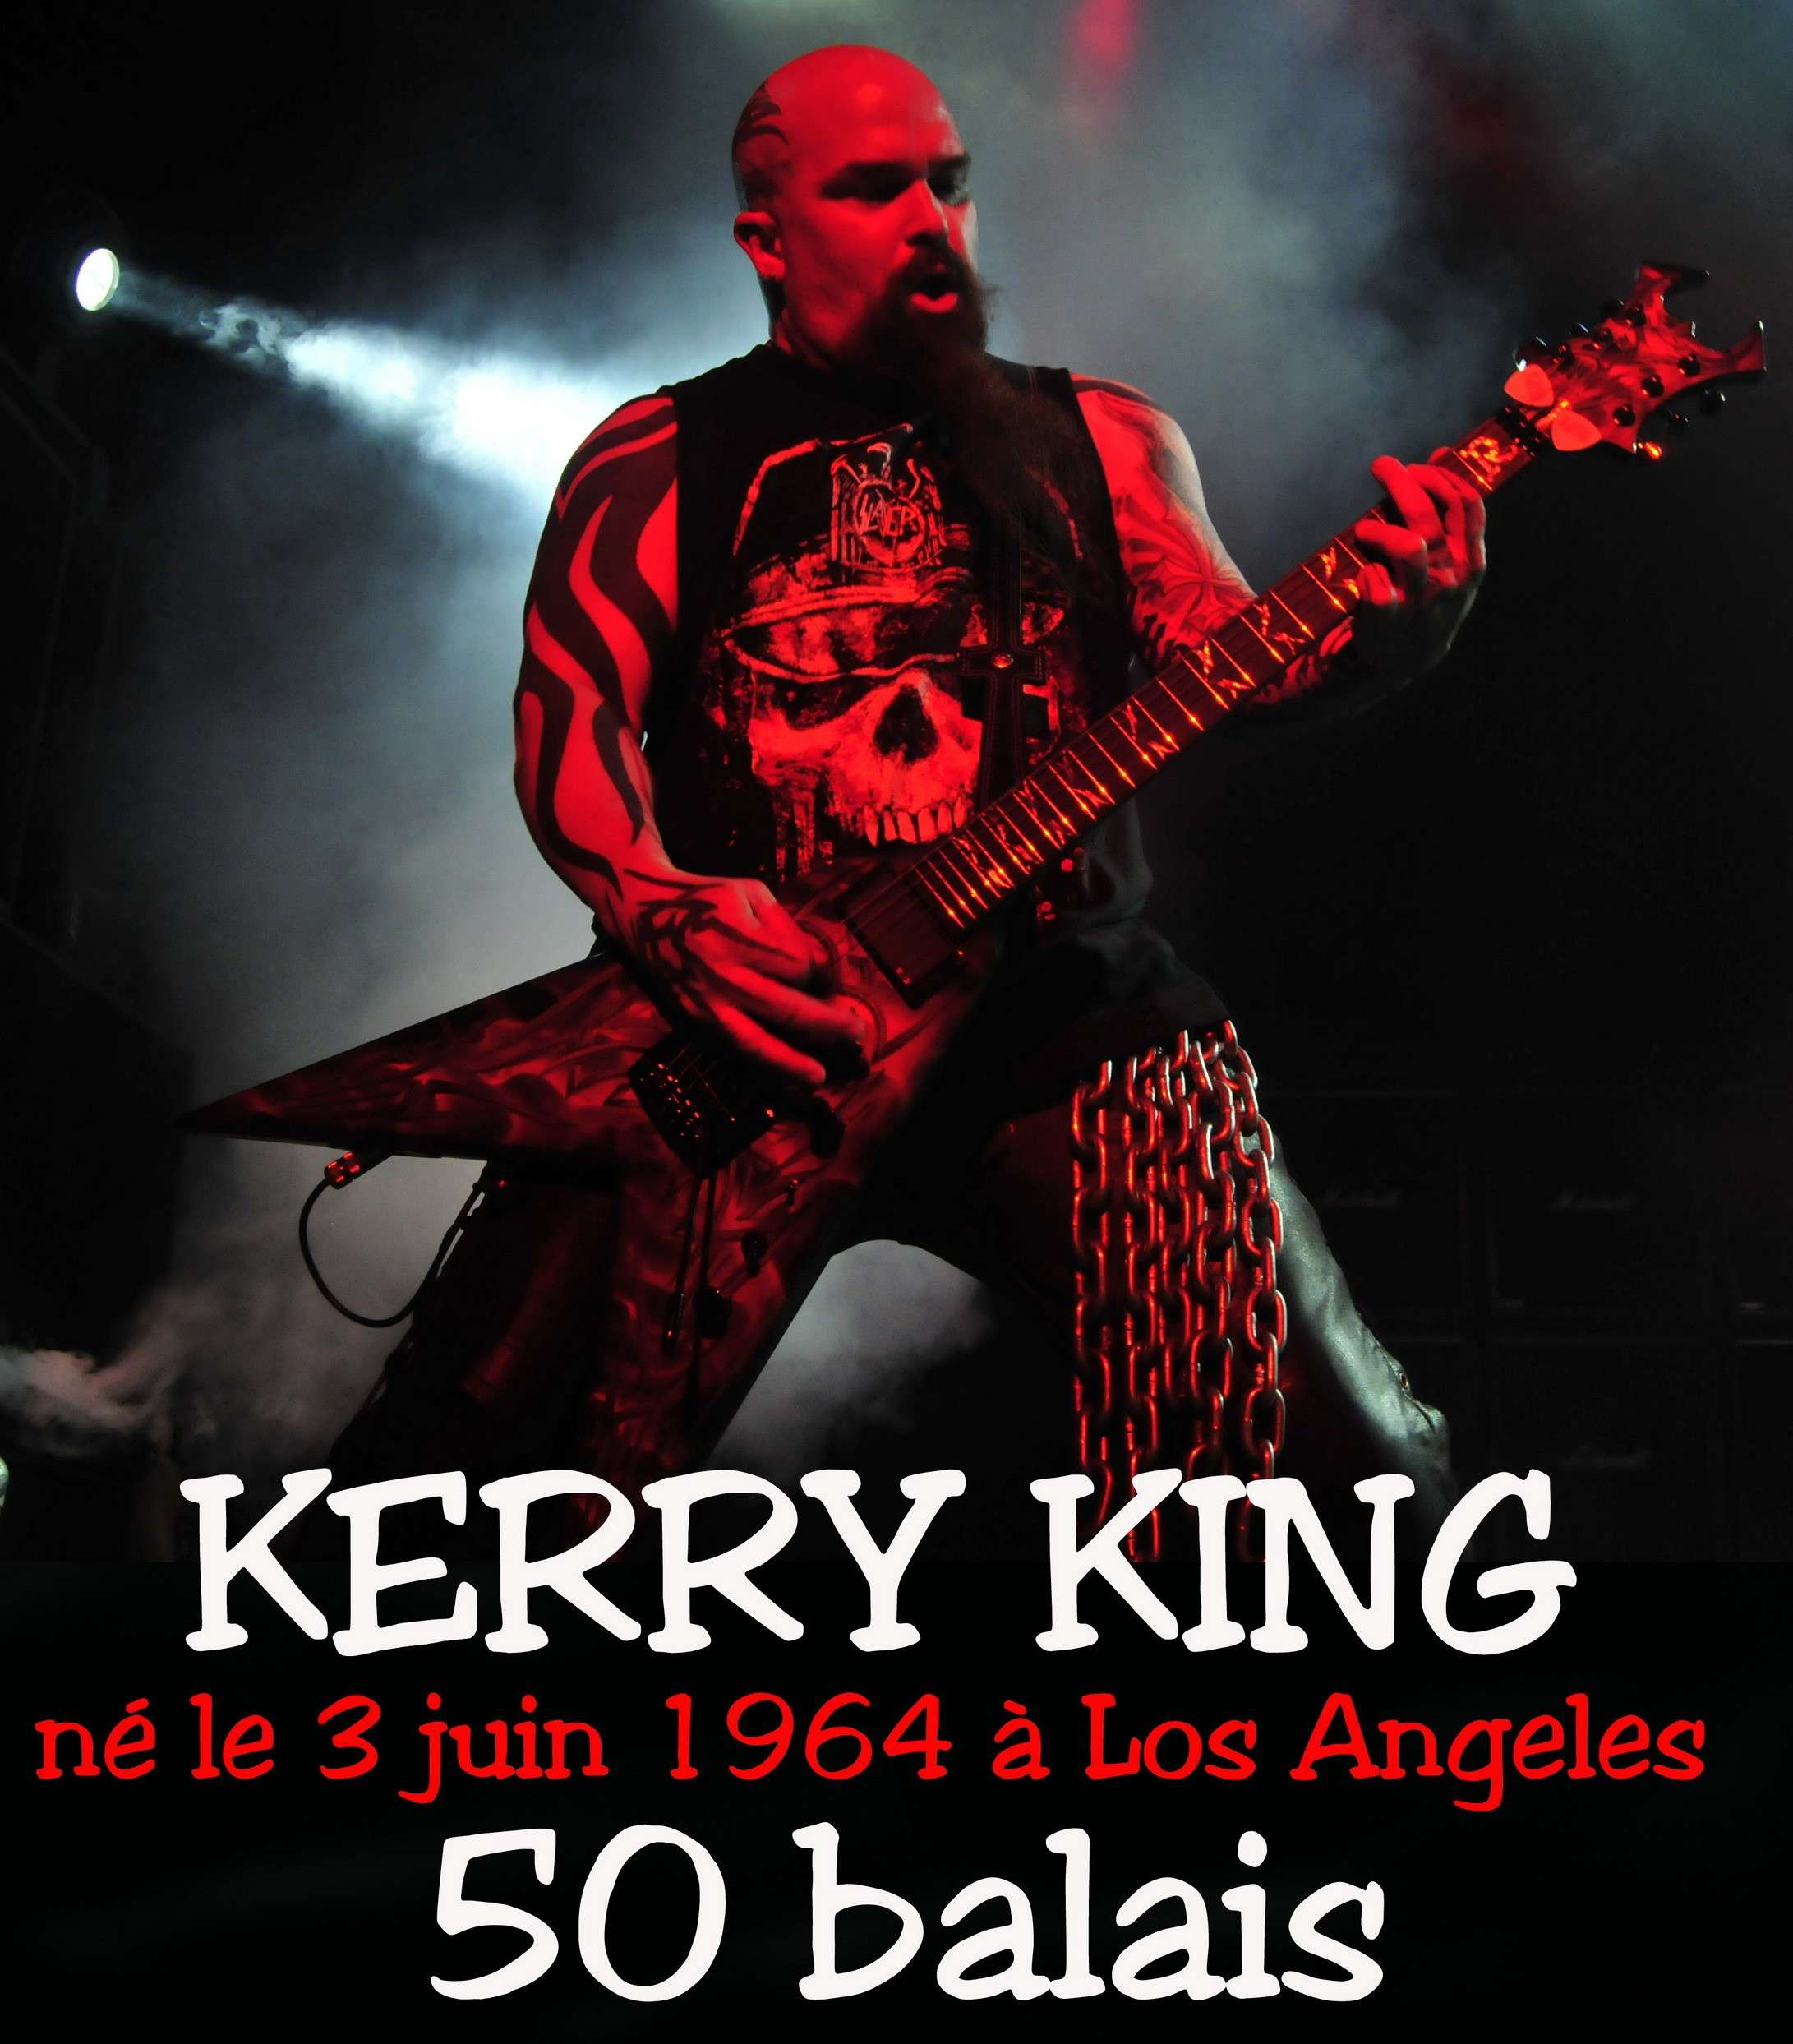 Les NEWS du METAL en VRAC ... - Page 3 Kerry_10